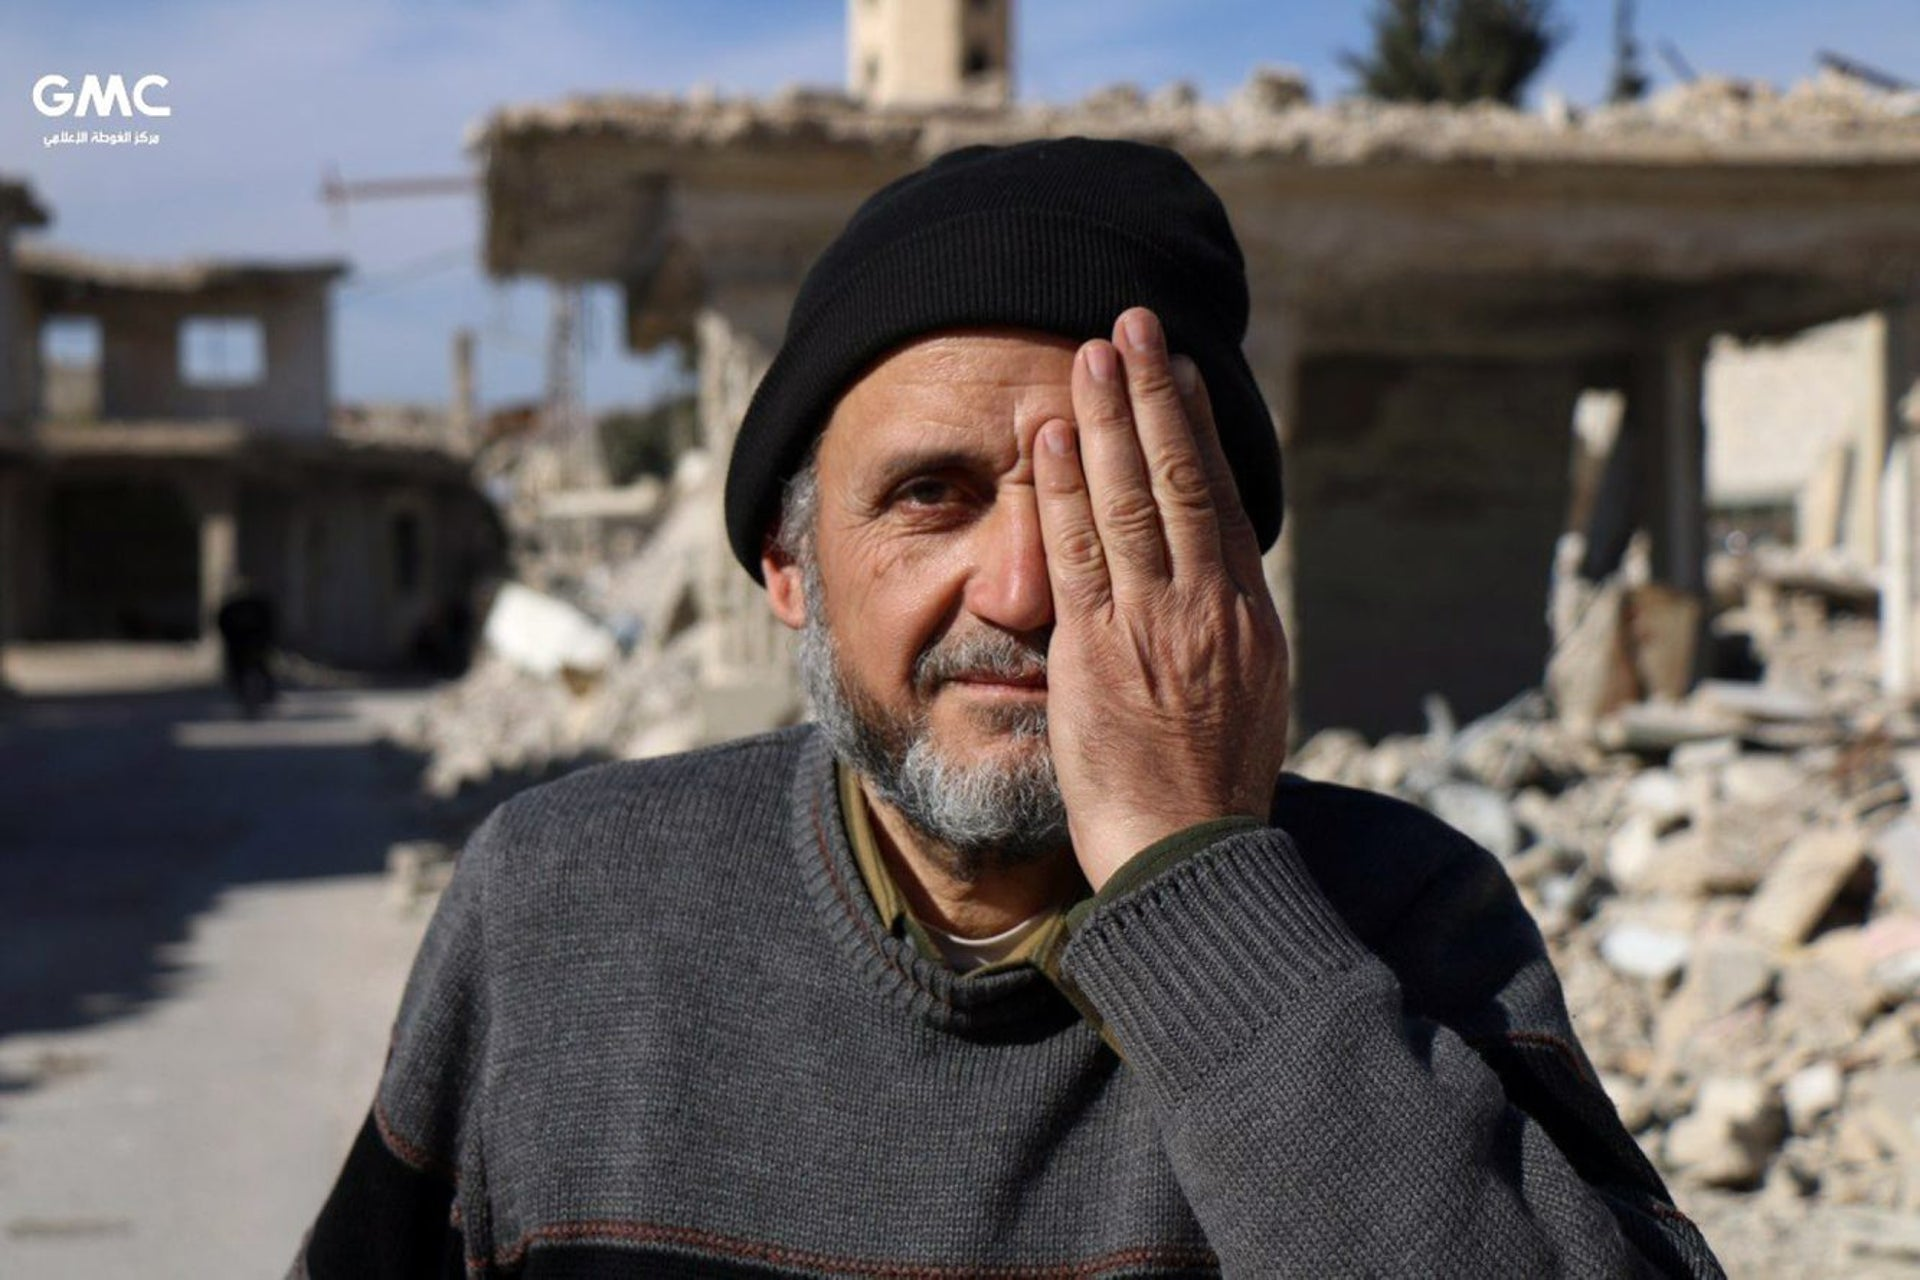 This photo provided on Monday, Dec. 18, 2017 by the Syrian anti-government activist group Ghouta Media Center, which has been authenticated based on its contents and other AP reporting, shows a man in Eastern Ghouta, a rebel-held suburb near the Syrian capital Damascus, covering his left eye in solidarity with Karim, who was injured weeks ago in a government bombing of the market of his hometown. Karim lost his mother and one eye in the bombings and is now becoming the face of a solidarity campaign with Eastern Ghouta, which has been besieged for nearly five years.